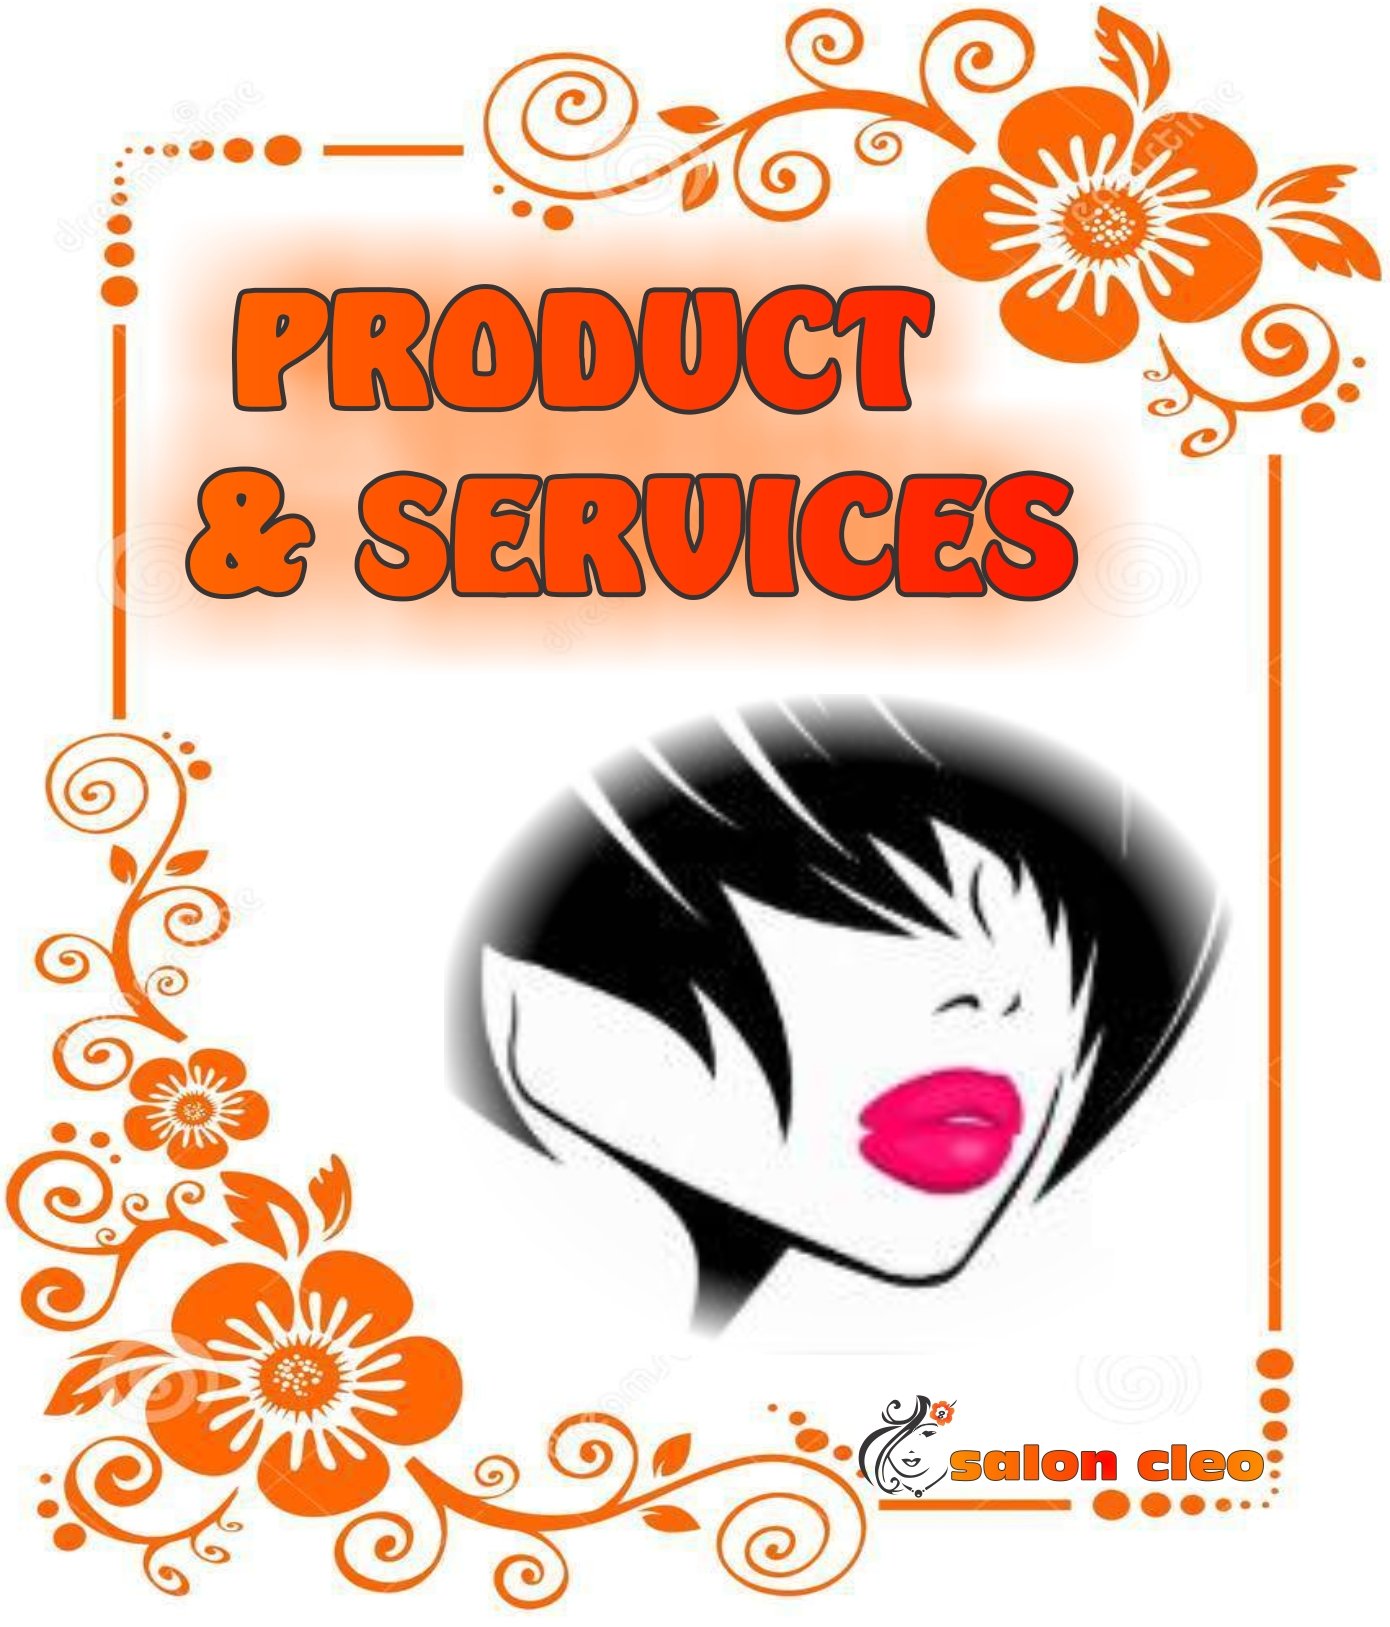 STOCKISTS OF GENUINE & ORIGINAL PERMANENT HAIR STRAIGHTENING TREATMENT DONE AT SALON CLEO DURBAN WITH GUARANTEED RESULTS. FREE PRODUCTS FOR TREATMENT AND AFTER CARE OF YOUR HAIR STRAIGHTENING TREATMENT. WE HAVE THE CHEAPEST DEAL IN KZN FOR ALL CURLY UNMANAGEABLE HAIR at SALON CLEO 0315002353 cloud 9 hair irons, ghd hair irons, coriolliss hair iron straighteners , BHE Hair iron Stylers...for the cheapest deal in all hair irons in South Africa Durban @ salon cleo 0315002353 durban phoenix 0315009998BHE Styler Hair iron launched 2015 in South Africa. Beautiful Hair Everyday all us today for a quote on your bridal package to suit your special day. call Nivi 0736100316 for all bridal packages. SALON CLEO bridal wedding packages KRYOLAN, PROFESSIONAL MAKE-UP. FOR A FLAWLESS SENSUOUS DELIIOUS GLOWING LOOK WITH A TOUCH OF EXTRAVAGANCE. KRYOLAN HAS 750 COLOR-INTENSE SHADES IS LOVED BY PROFESSIONAL MAKE-UP ARTISTS WORLDWIDE. FOUNDATIONS AND MAKE-UPS FOR THE CHEAPEST DEAL IN KRYOLAN COSMETIC PRODUCTS AT SALON CLEO PHOENIX 0315002353 ACRYLIC NAILS Finger nails are an important part of overall appearance to many women You lead a busy life , you deserve a little pampering Royal treatment , reasonable prices . its all yours at salon cleo ACRYLIC NAILS Finger nails are an important part of overall appearance to many women You lead a busy life , you deserve a little pampering Royal treatment , reasonable prices . its all yours at salon cleo Professional Hair stylist Nivi Deenanath SALON CLEO. Family business established for 30 years. with an enormous clientelle. We are a team of hair designers with the skills, the tools and the experience to create beautiful styles. We have spent years perfecting our craft so we can work together as a team to make you feel beautiful and confident and give you an amazing experience in our salon mage and personal facial looks is everything today. We at SALON CLEO give off 100% in making you look your very best with use of the correct facial products at the cheapest affordable rates. facials, waxing, threading, chemical peel facials, dermaplex facial products, justine facial products,kryolan facial costmetics products. salon cleo phoenix 0315002353 0315009998 GARCINIA CAMBOGIA WONDER WEIGHT LOSS CAPSULES now available. COOL LIPOLYSIS FAT FREEZING WEIGHT LOSS TREATEMENT PROCEDURE done at salon cleo. FAT BURNER WEIGHT LOSS CAPSULE ALSO AVAILABLE AT SALON CLEO DURBAN. FERRADIC HEAT WEIGHT LOSS PADS & ELECTRO MAGNETIC TONING WEIGHT LOSS PADS...These procedures now available at salon cleo . call NIVI 0736100316 today for a quick fix to you weight loss resolutions  SALON CLEO FOR THE CHEAPEST GHD HAIR IRON IN DURBAN SALON CLEO HAS THE CHEAPEST DEAL IN CLOUD NINE HAIR IRON IN DURBAN SALON CLEO ONLY KEEPS GENUINE HAIR IRON STRAIGHTENERS SALON CLEO FOR THE CHEAPEST PRICE ON CARAOLIS HAIR IRONSSALON CLEO FOR THE CHEAPEST PRICE DEAL ON ALL CORIOLIS HAIR IRONS GHD GHD GHD GHD SALES GHD CHEAPEST GHD CHEAPEST GHD HAIR IRONS SALON CLEO SALON CLEO GHD SALON CLEO CLOUD 9 SALON CLEO CLOUD NINE SALON CLEO CARAOLIS HAIR IRON SALON CLEO CORIOLIS HAIR IRONS GHD HAIR IRON REPAIRS CLOUD NINE HAIR IRON REPAIRS DURBAN CORIOLIS HAIR IRON REPAIRS DURBAN RCS CREDIT CARDS ACCEPTED HERE AT OUR STORE FOR PURCHASE OF YOUR CORIOLLIS HAIR IRON.RCS PURCHASES GHD HAIRS IRONS RCS PURCHASES CLOUD 9 HAIR IRONS RCS PURCHASES CLOUD NINE HAIR IRON APPLICATIONS NOW DONE INSTORE FOR AN RCS CREDIT CARD & FEEDBACK WITH 48 HOURS.COROILIS HAIR IRON REPAIRS DURBAN HAIR IRON REPAIR CENTRE DURBAN GHD REPAIRS DURBAN GHD HAIR IRON REPAIRS PROFFESSIONALLY DONE IN DURBAN PHOENIX  CHEAPEST PRICE ON ALL HAIR IRONS GHD CLOUD 9 CLOUD NINE CARIOLIS CORIOLIS GHD HAIR IRONS DURBAN SALON CLEO PHOENIX Salon Cleo is the cheapest Stockists  of GHD HAIR IRONS, CLOUD 9 HAIR IRONS, CARIOLIS HAIR IRON GHD NEW RANGE HAIR IRONS:GHD ECLIPSE NOW AVAILABLE AT SALON CLEO PHOENIX DURBAN 0315009998 CLOUD NINE MENS MINI STYLERS...CLOUD 9 THE TOUCH HAIR IRON...NEW RANGE OF THE CLOUD NINE SERIES.CLOUD 9 ON AN EXTREMLY LOW SPECIAL AT R1750 (CASH ONLY) ONLY AT SALON CLEO KZN DURBAN 0315002353....0315009998SALON CLEO HAS THE  CHEAPEST DEAL ON CLOUD NINE HAIR IRON STRAIGHTENERS in Durban Kzn.Salon Cleo is the cheapest Stockists of GHD HAIR IRONS, CLOUD 9 HAIR IRONS, CORIOLLIS HAIR IRONCLOUD 9 MENS MINI STYLERS...CLOUD NINE THE TOUCH HAIR IRON....CLOUD 9  BHE HAIR IRON STYLERSBeautiful Hair Everyday  The unique BHE Styler protects your hair while you style, thanks to its SMART plates that help to keep your hair healthy and strong.  The BHE Styler SMART plates include: Kera Therapy protein infused plates assists in smoothing the cuticles and heal the hair, in time of split ends and damaged hair Keratin is a naturally occurring protein, which is a vital element in strong, healthy hair. Next generation ceramic plates are infused with Keratin proteins that transfer to your hair during styling and last the life of the product GHD CLOUD9 BHE CORIOLISS HAIR IRON STRAIGHTENERS HAIR IRON STYLERS